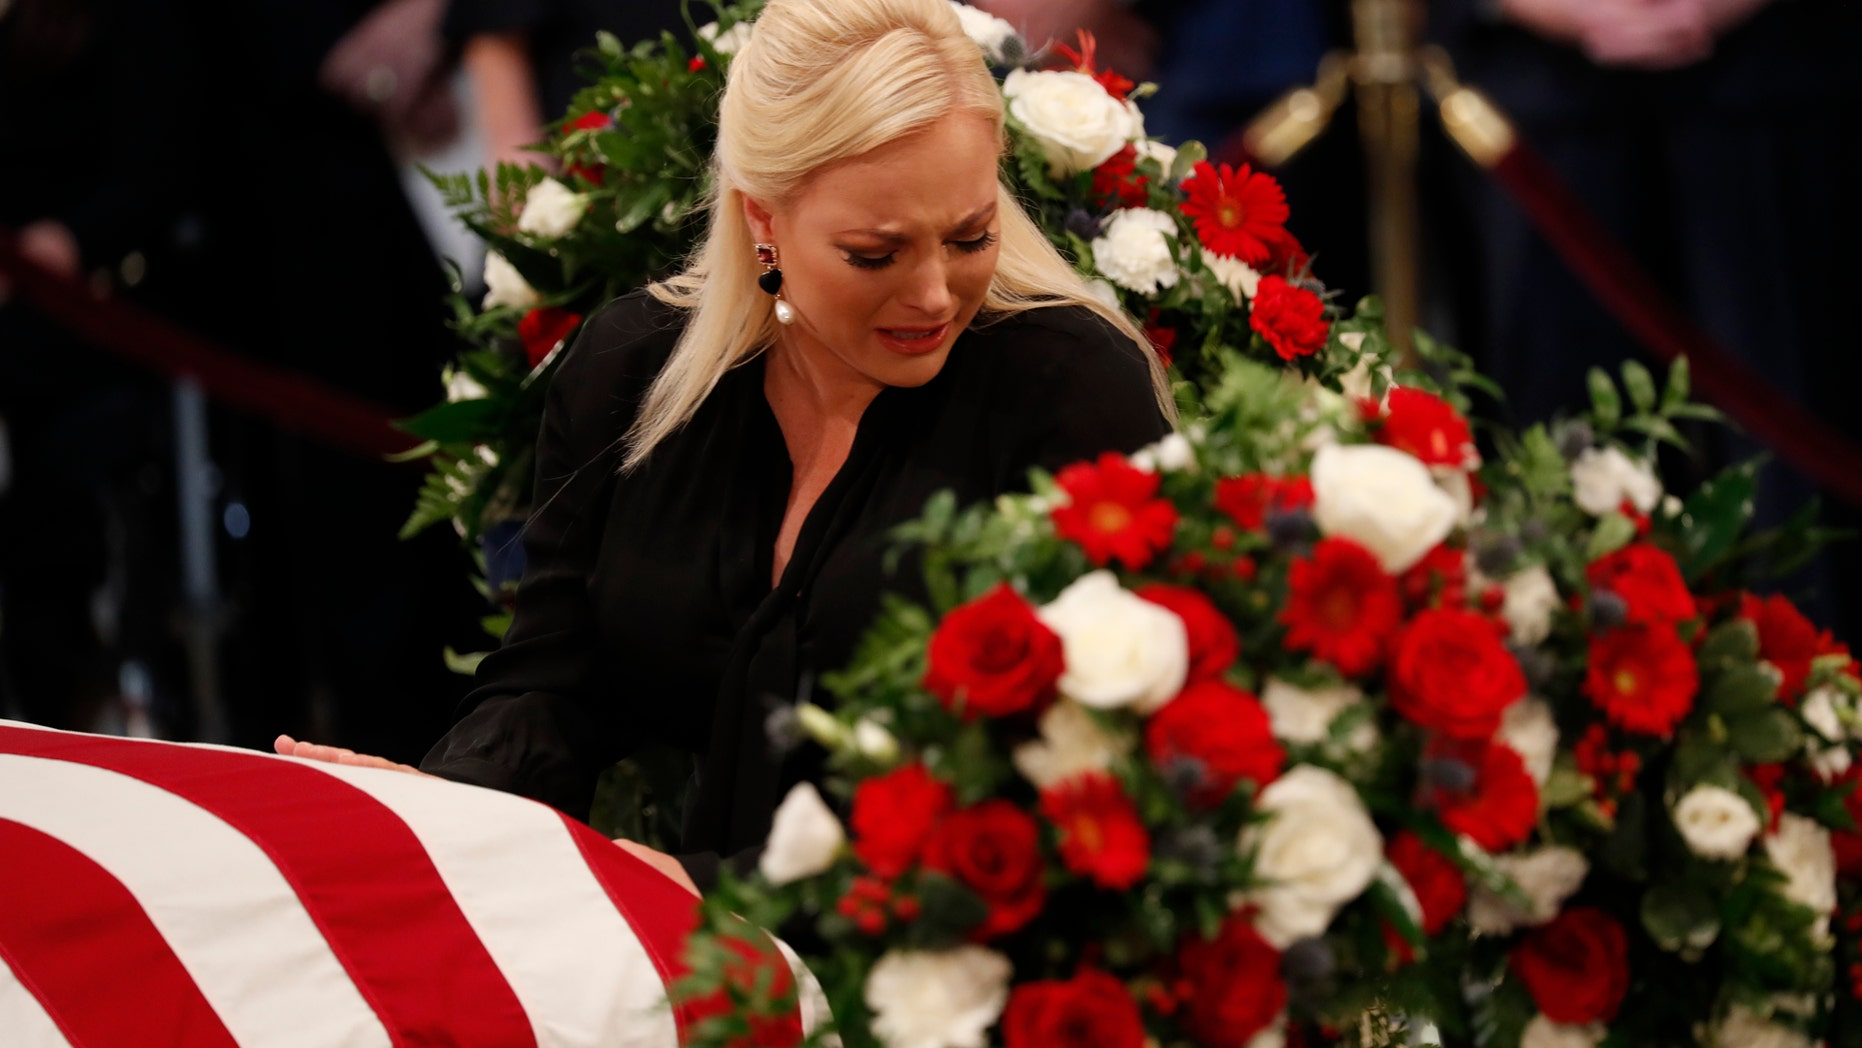 WASHINGTON, DC - AUGUST 31: Meghan McCain, daughter of late U.S. Senator John McCain, touches her father's casket during ceremonies honoring the late US Senator John McCain inside the Rotunda of the U.S. Capitol, August 31, 2018 in Washington, DC. The late senator died August 25 at the age of 81 after a long battle with brain cancer. He will lie in state at the U.S. Capitol Friday, a rare honor bestowed on only 31 people in the past 166 years. Sen. McCain will be buried at his final resting place at the U.S. Naval Academy on Sunday. (Photo by Kevin Lamarque-Pool/Getty Images)